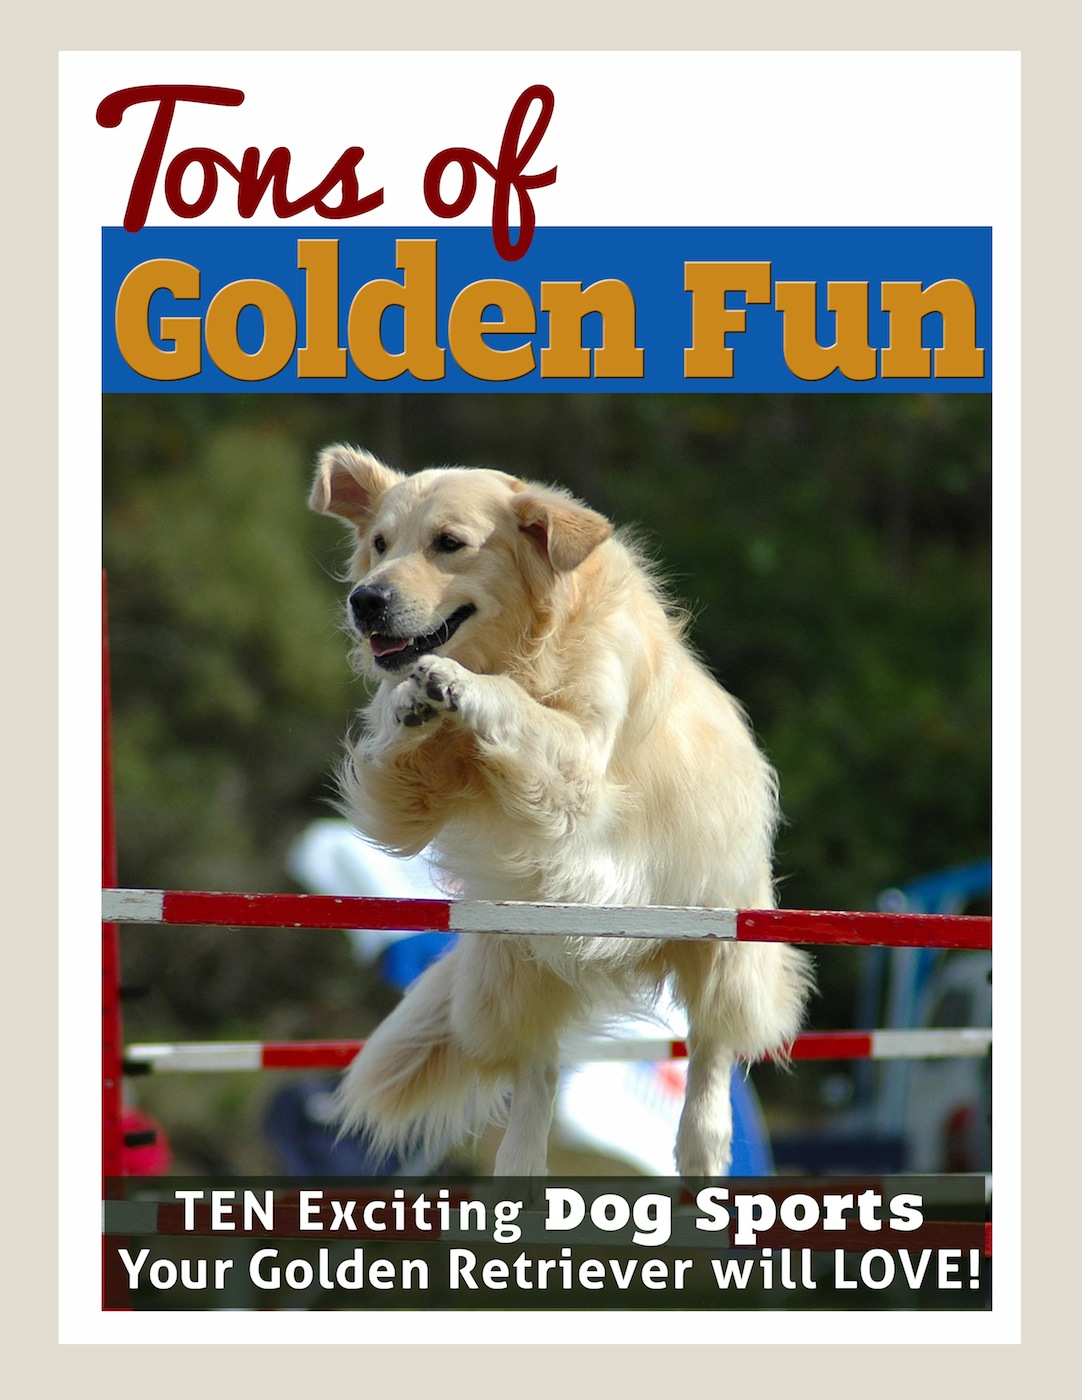 Tons of Golden Fun: Ten Exciting Dog Sports Your Golden Retriever Will Love!